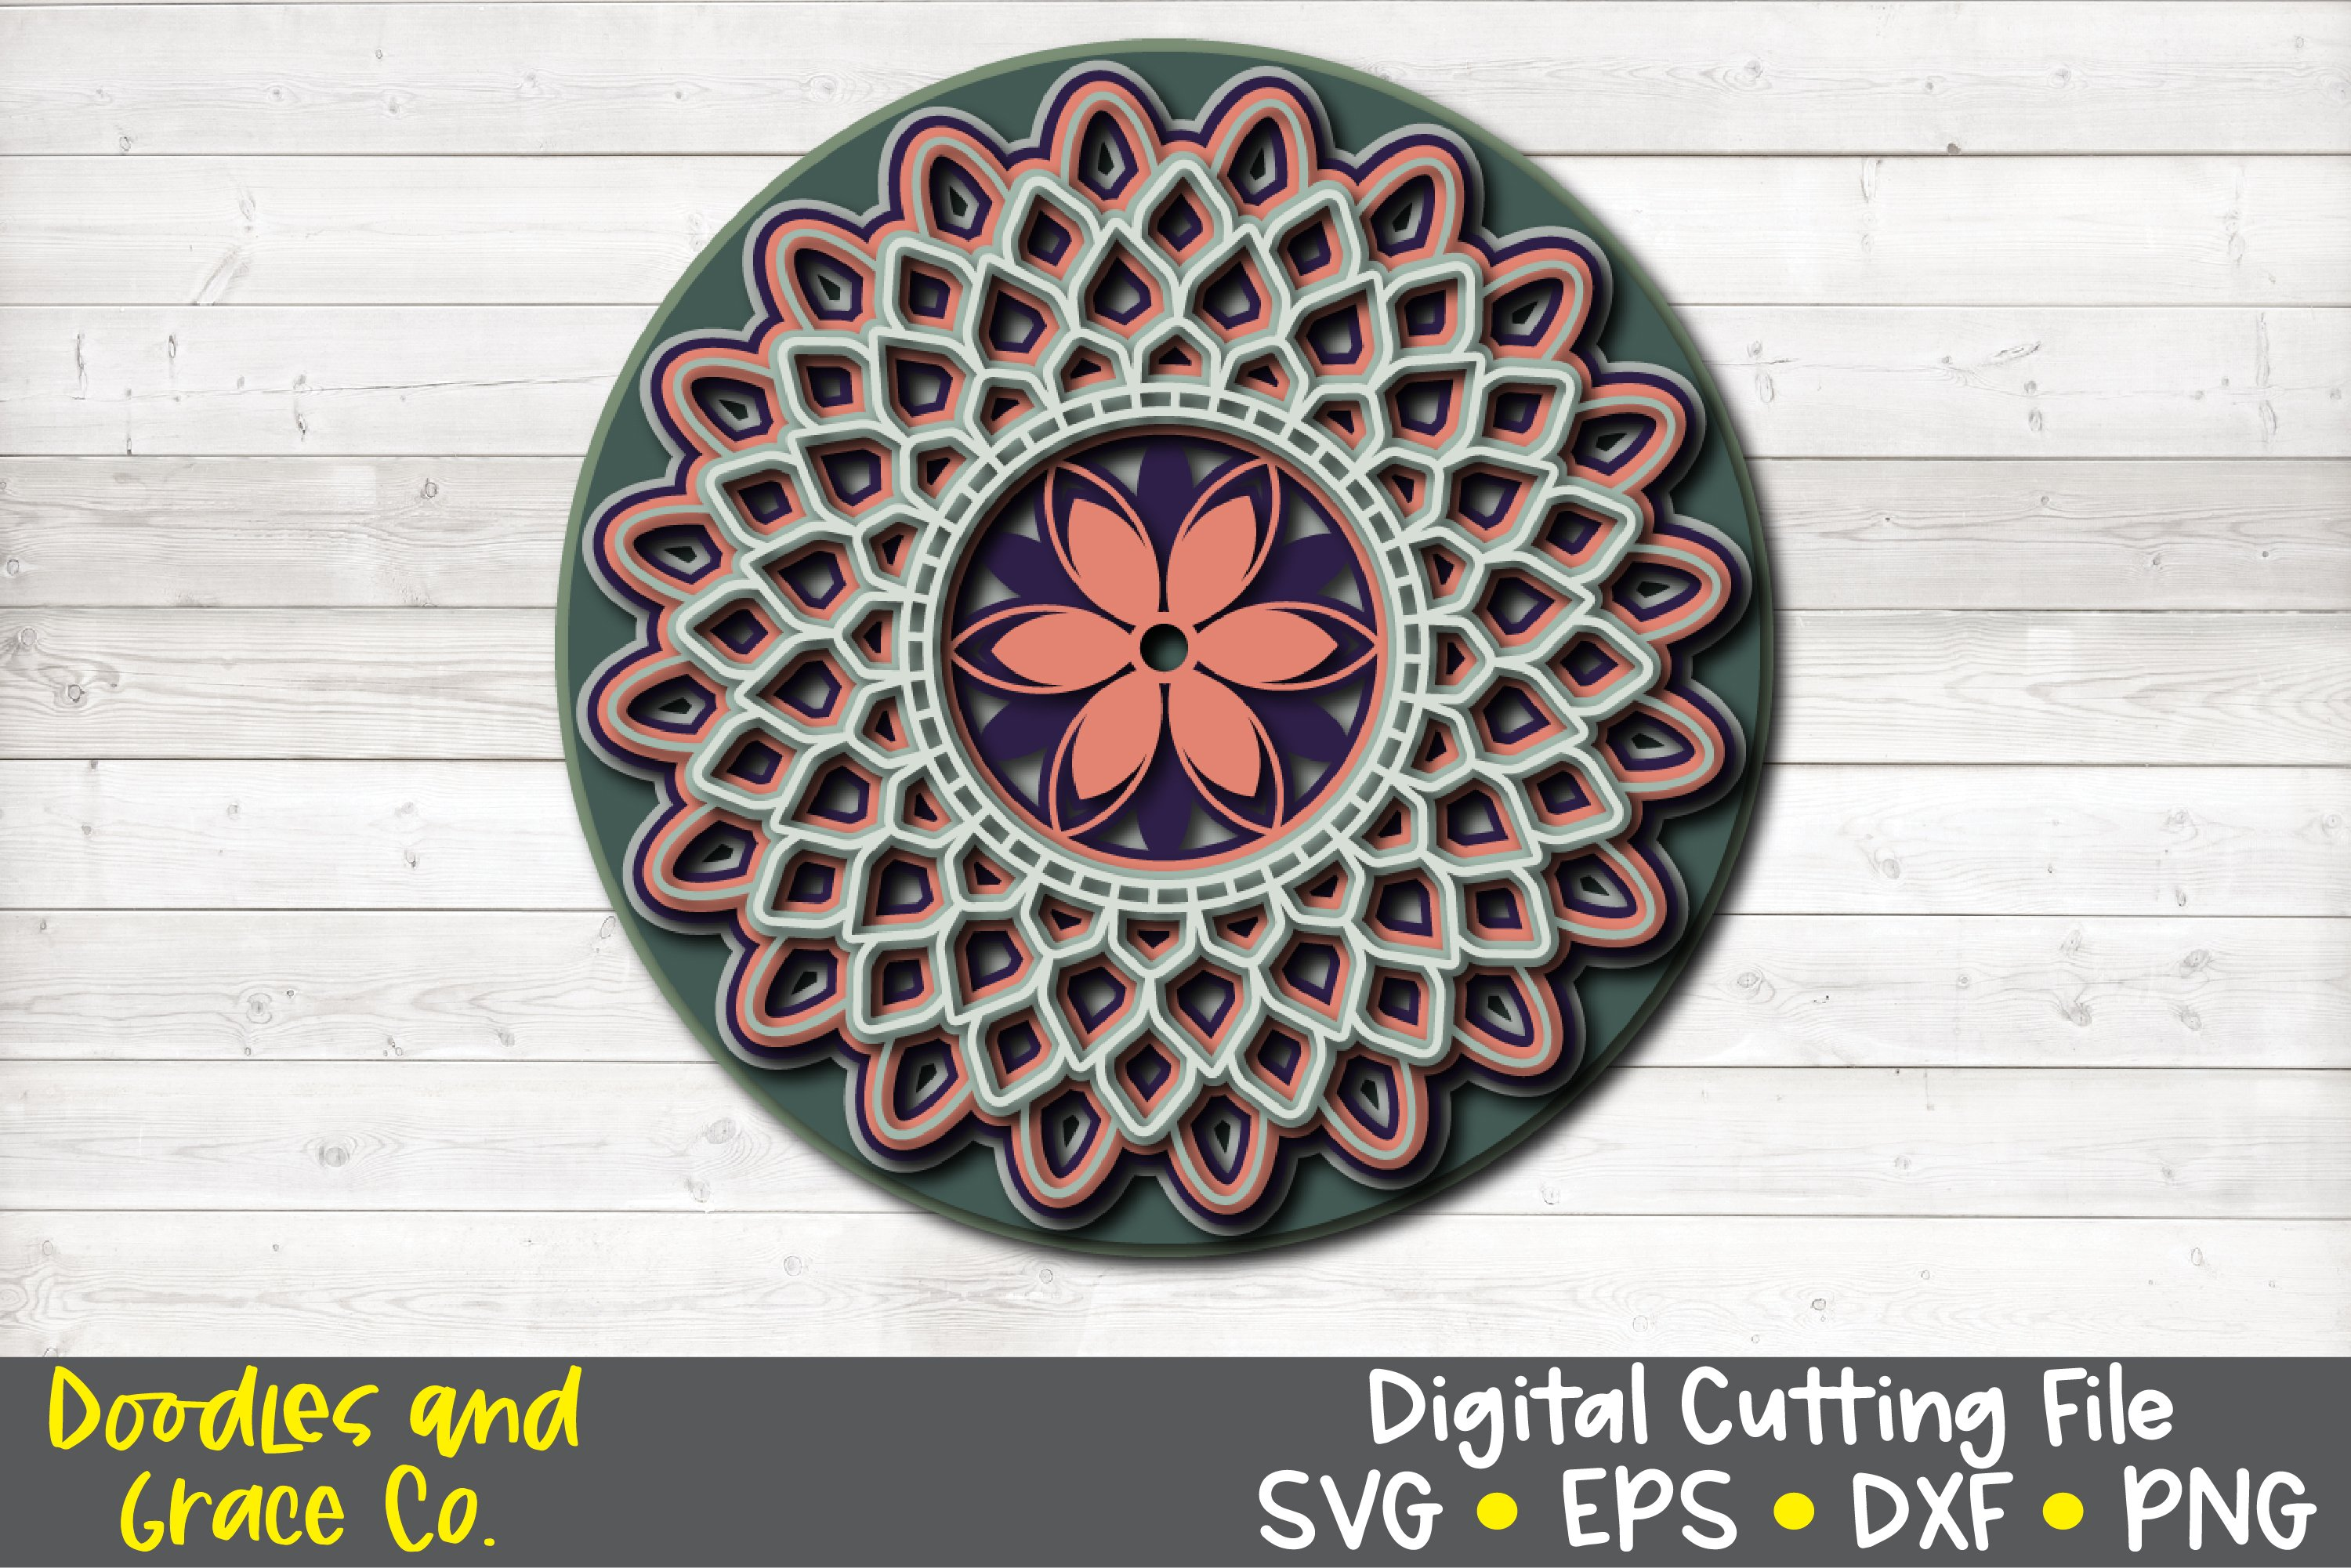 3D Layered Mandala Bundle - SVG - PNG - EPS - DXF example image 5